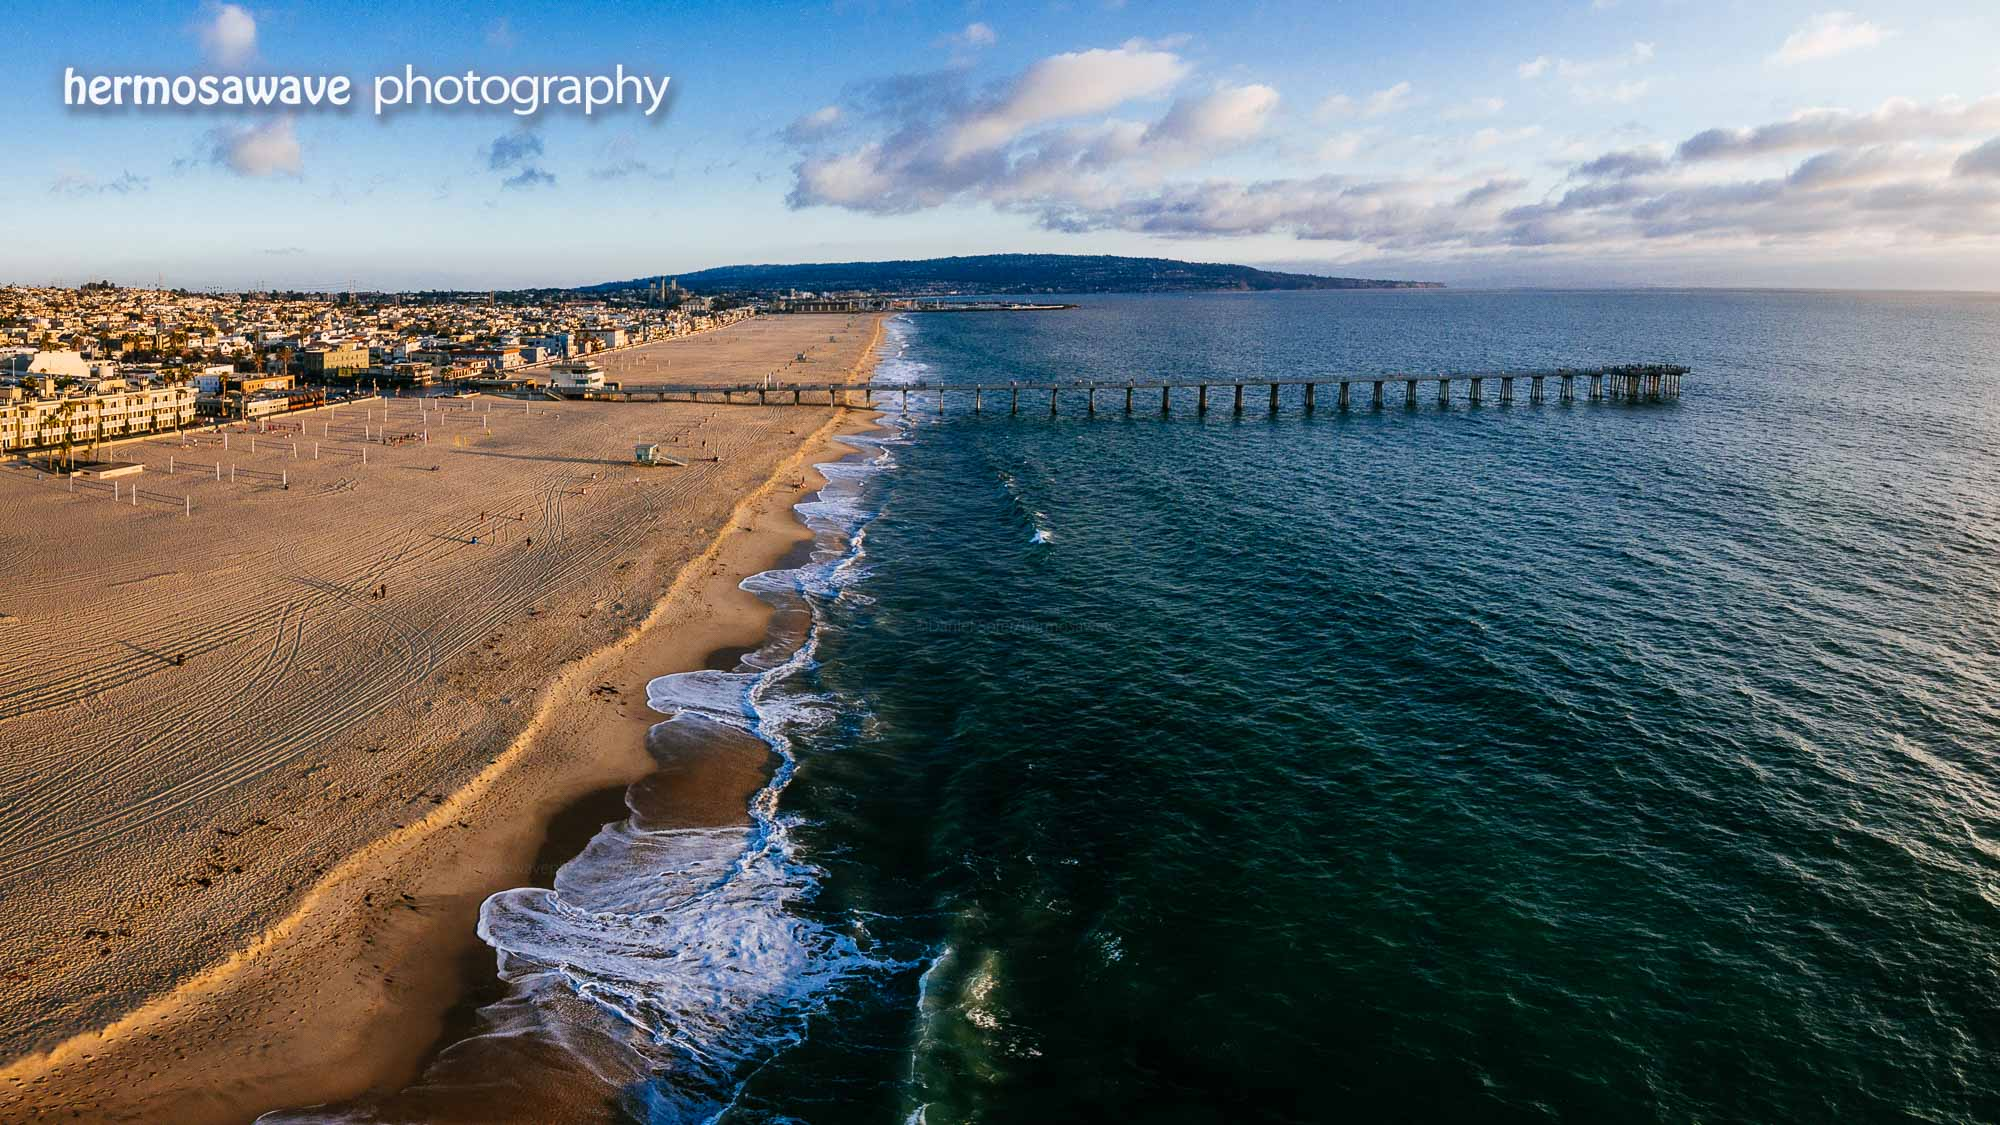 Looking Over Hermosa Pier